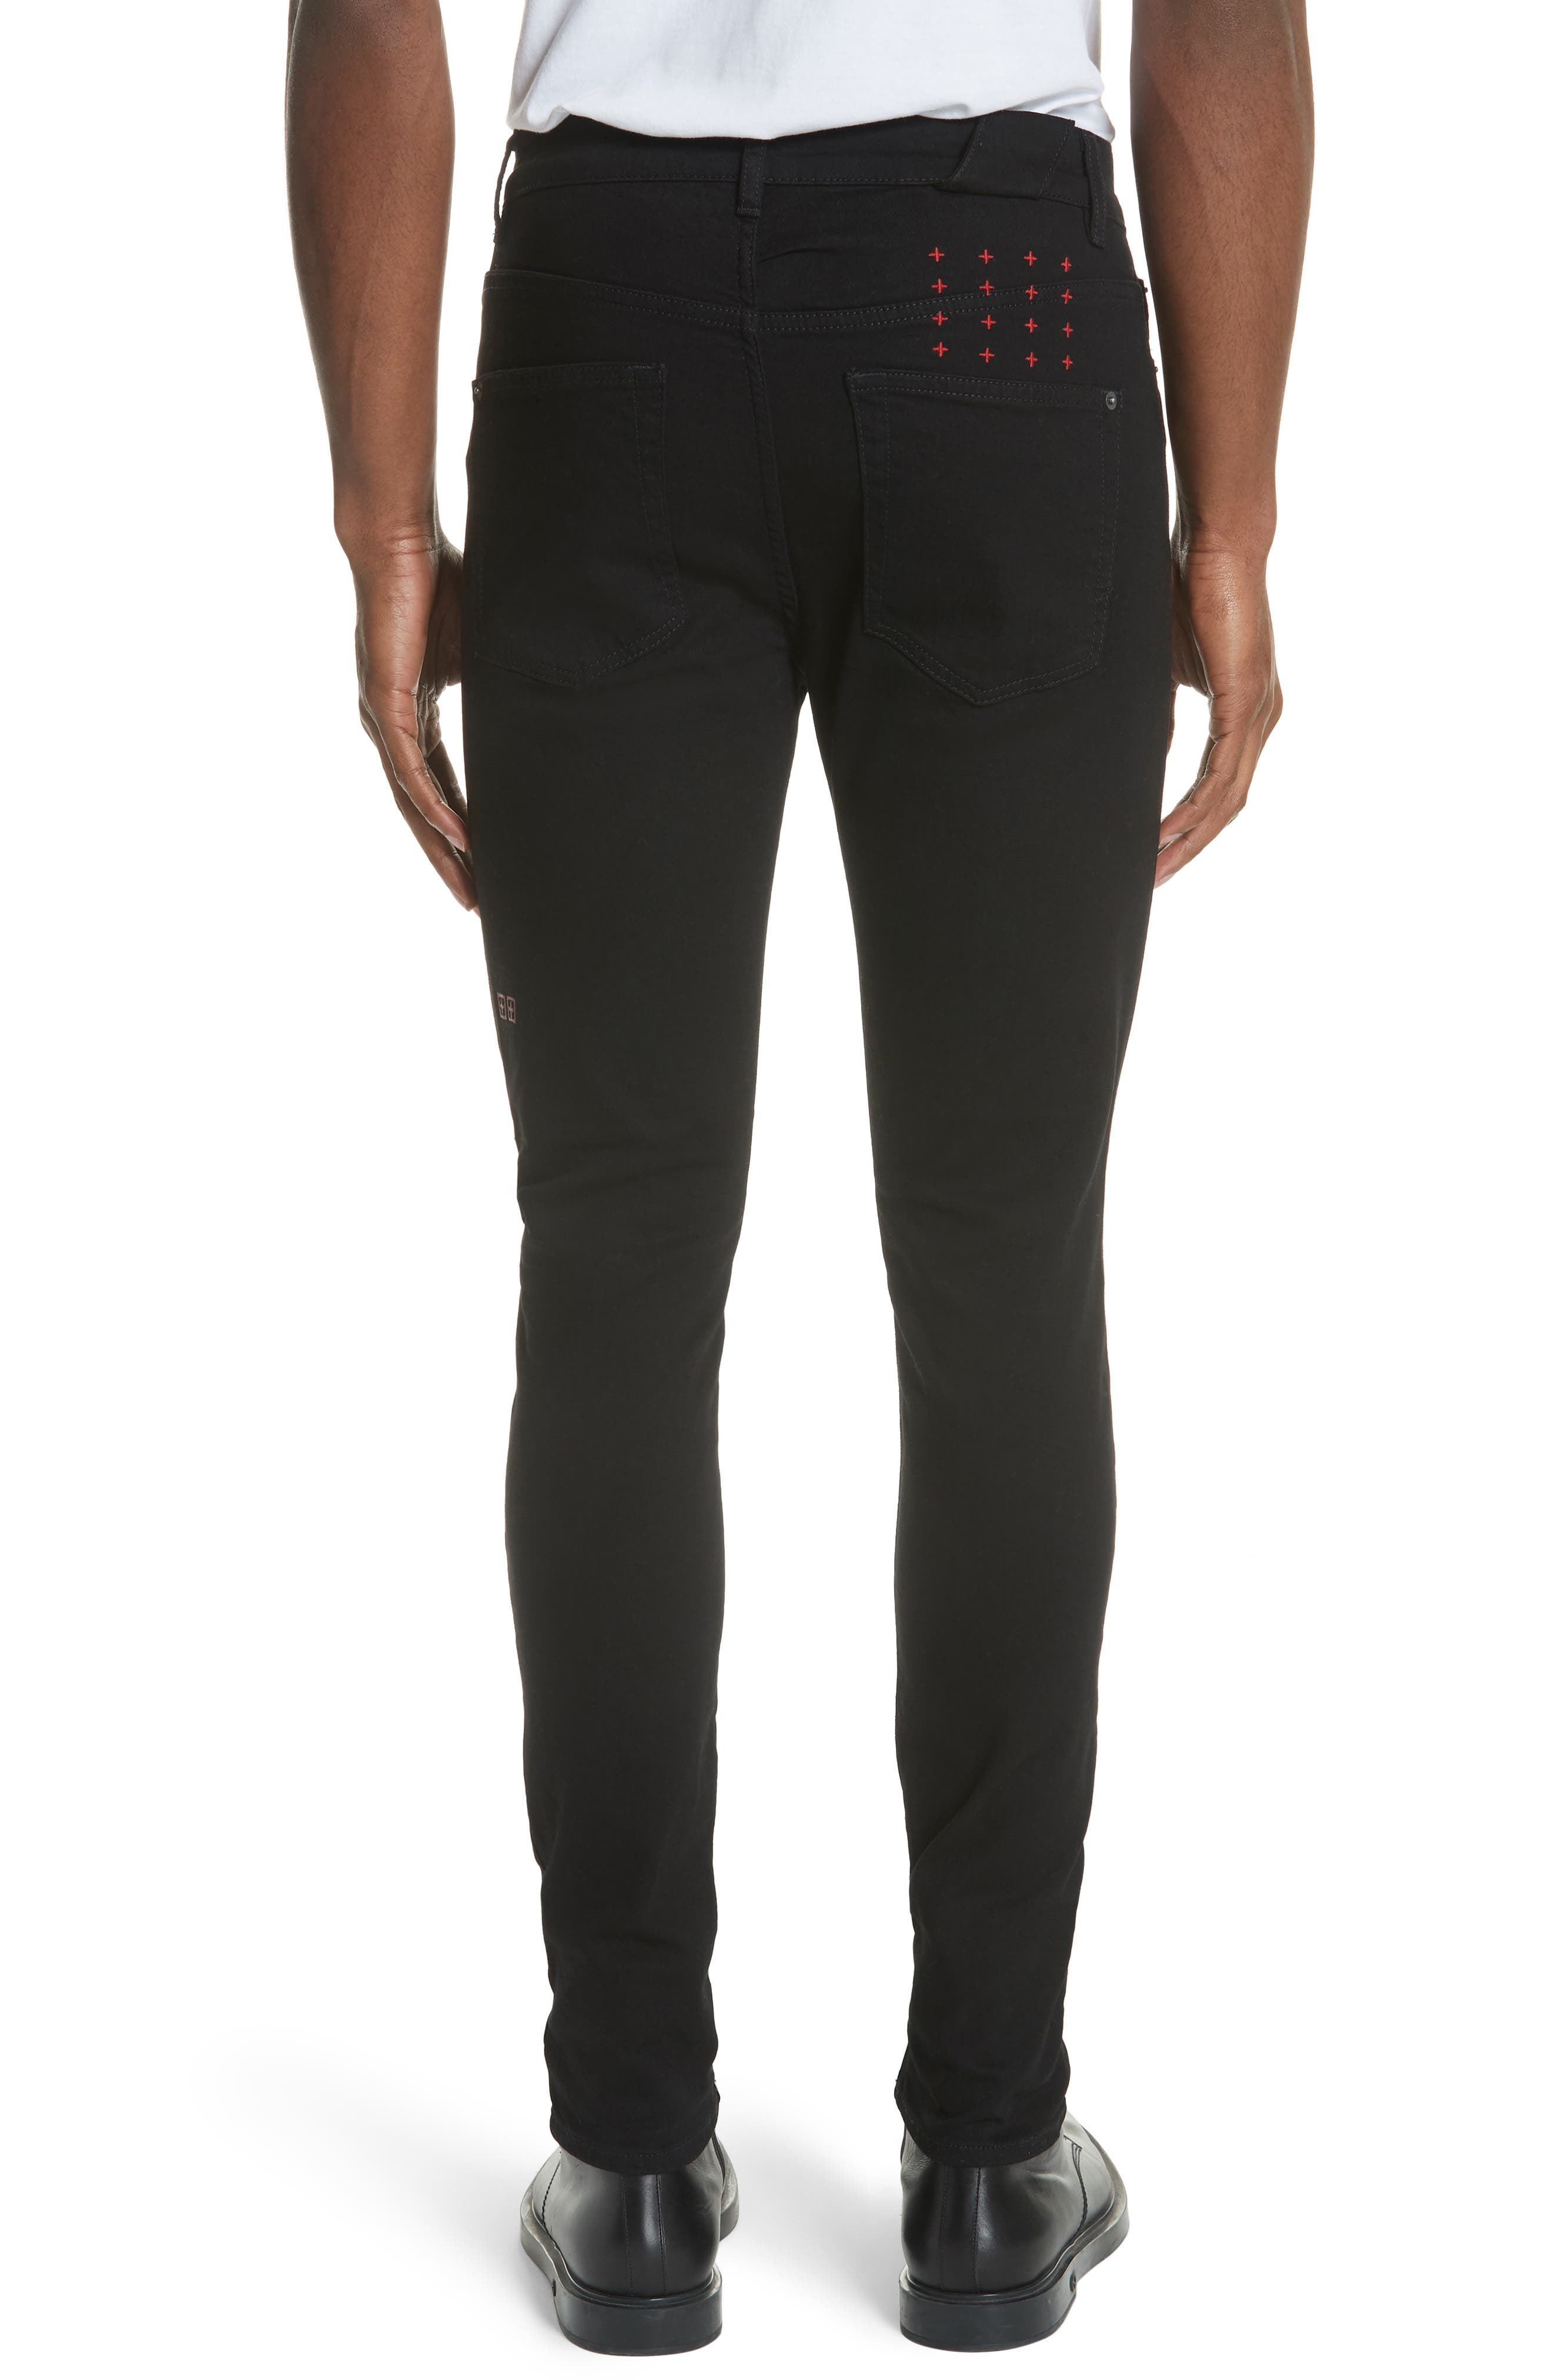 Chitch Laid Skinny Fit Jeans,                             Alternate thumbnail 2, color,                             BLACK